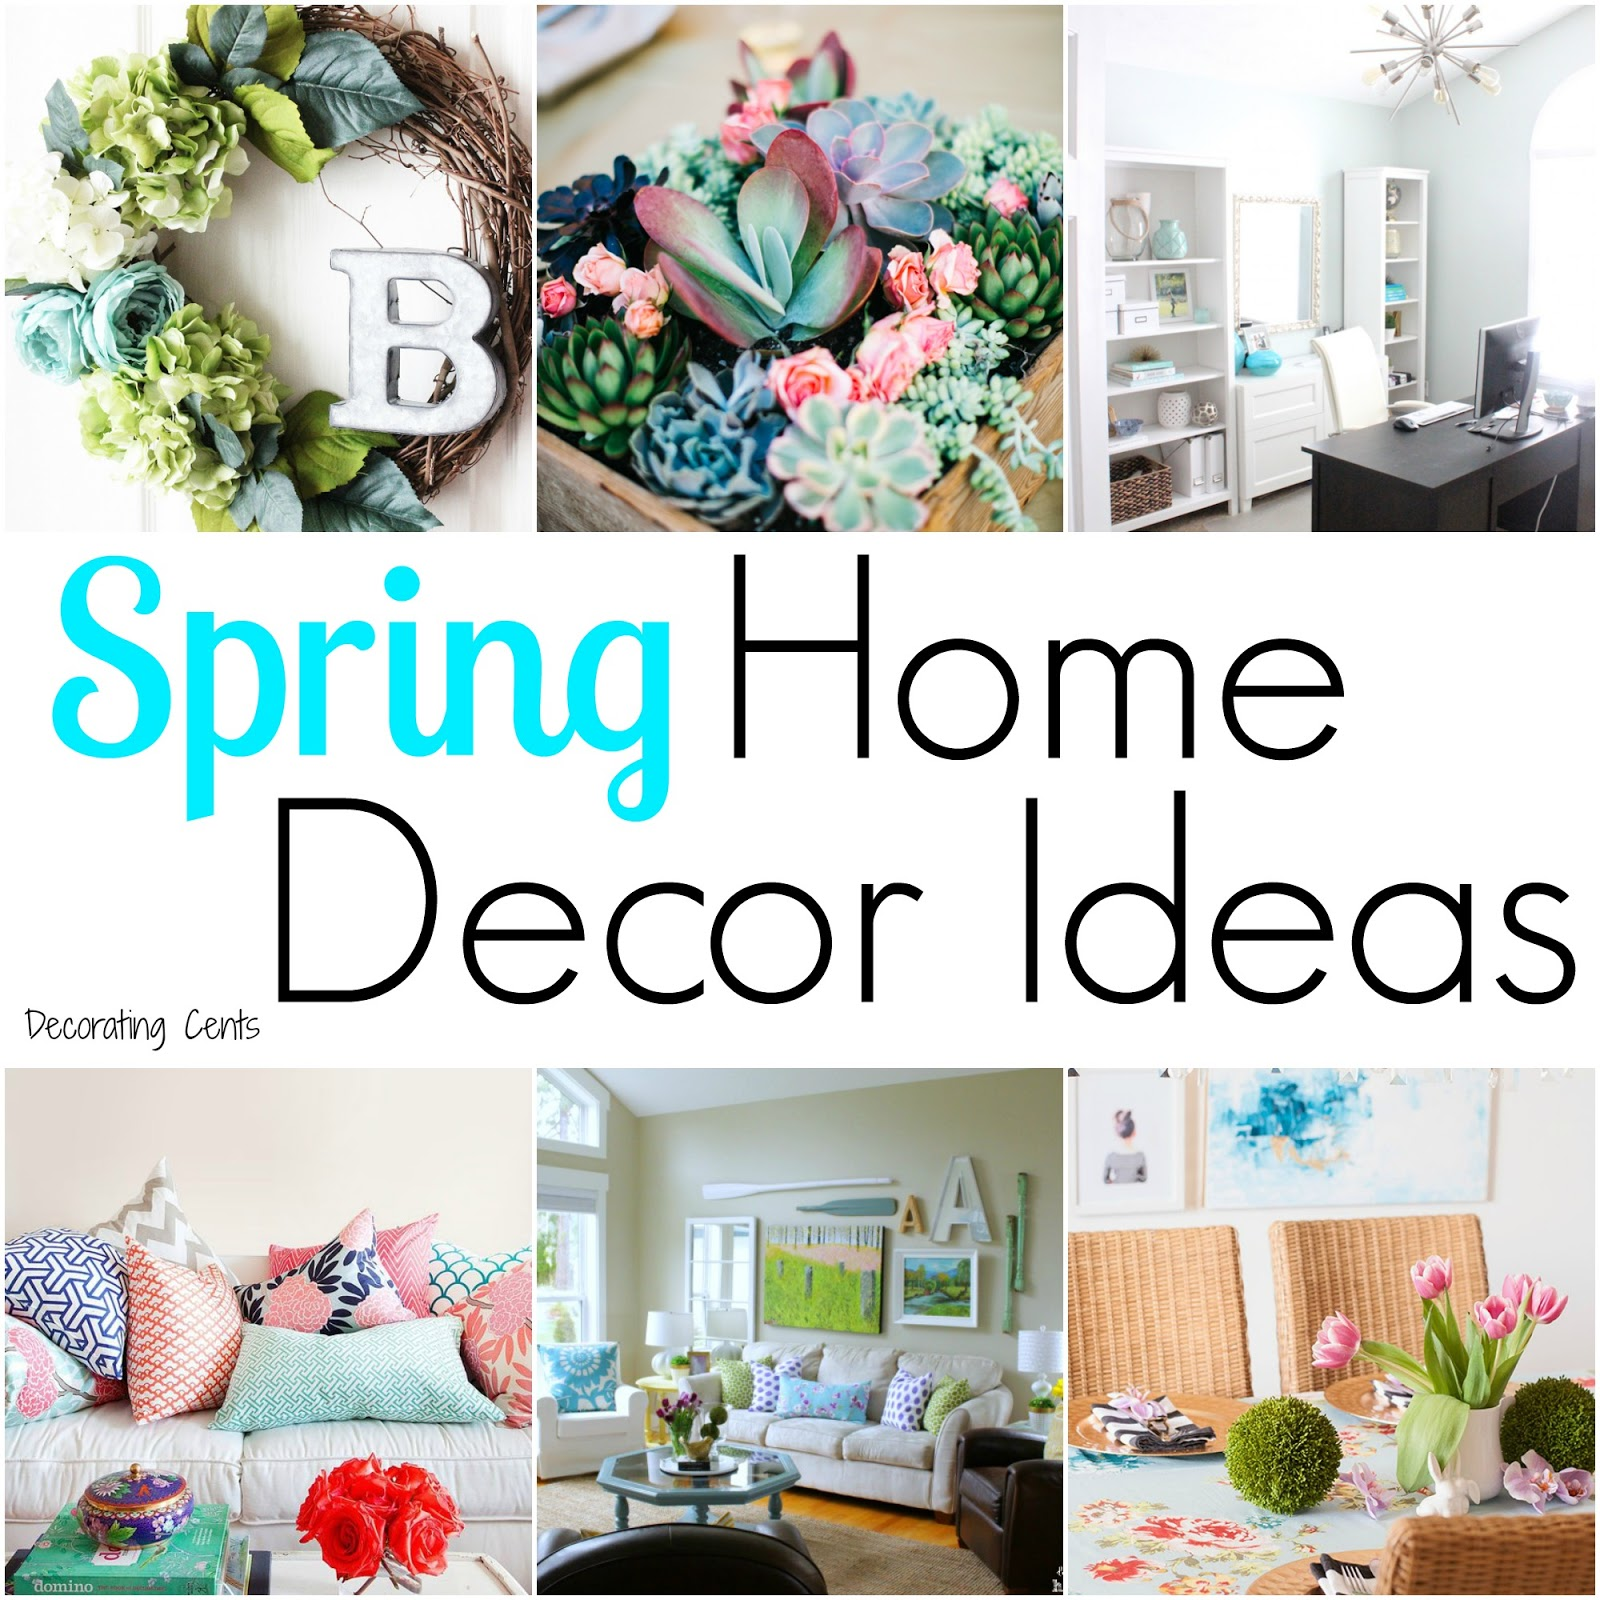 18 Spring Decor Ideas: Spring Home Decor Ideas